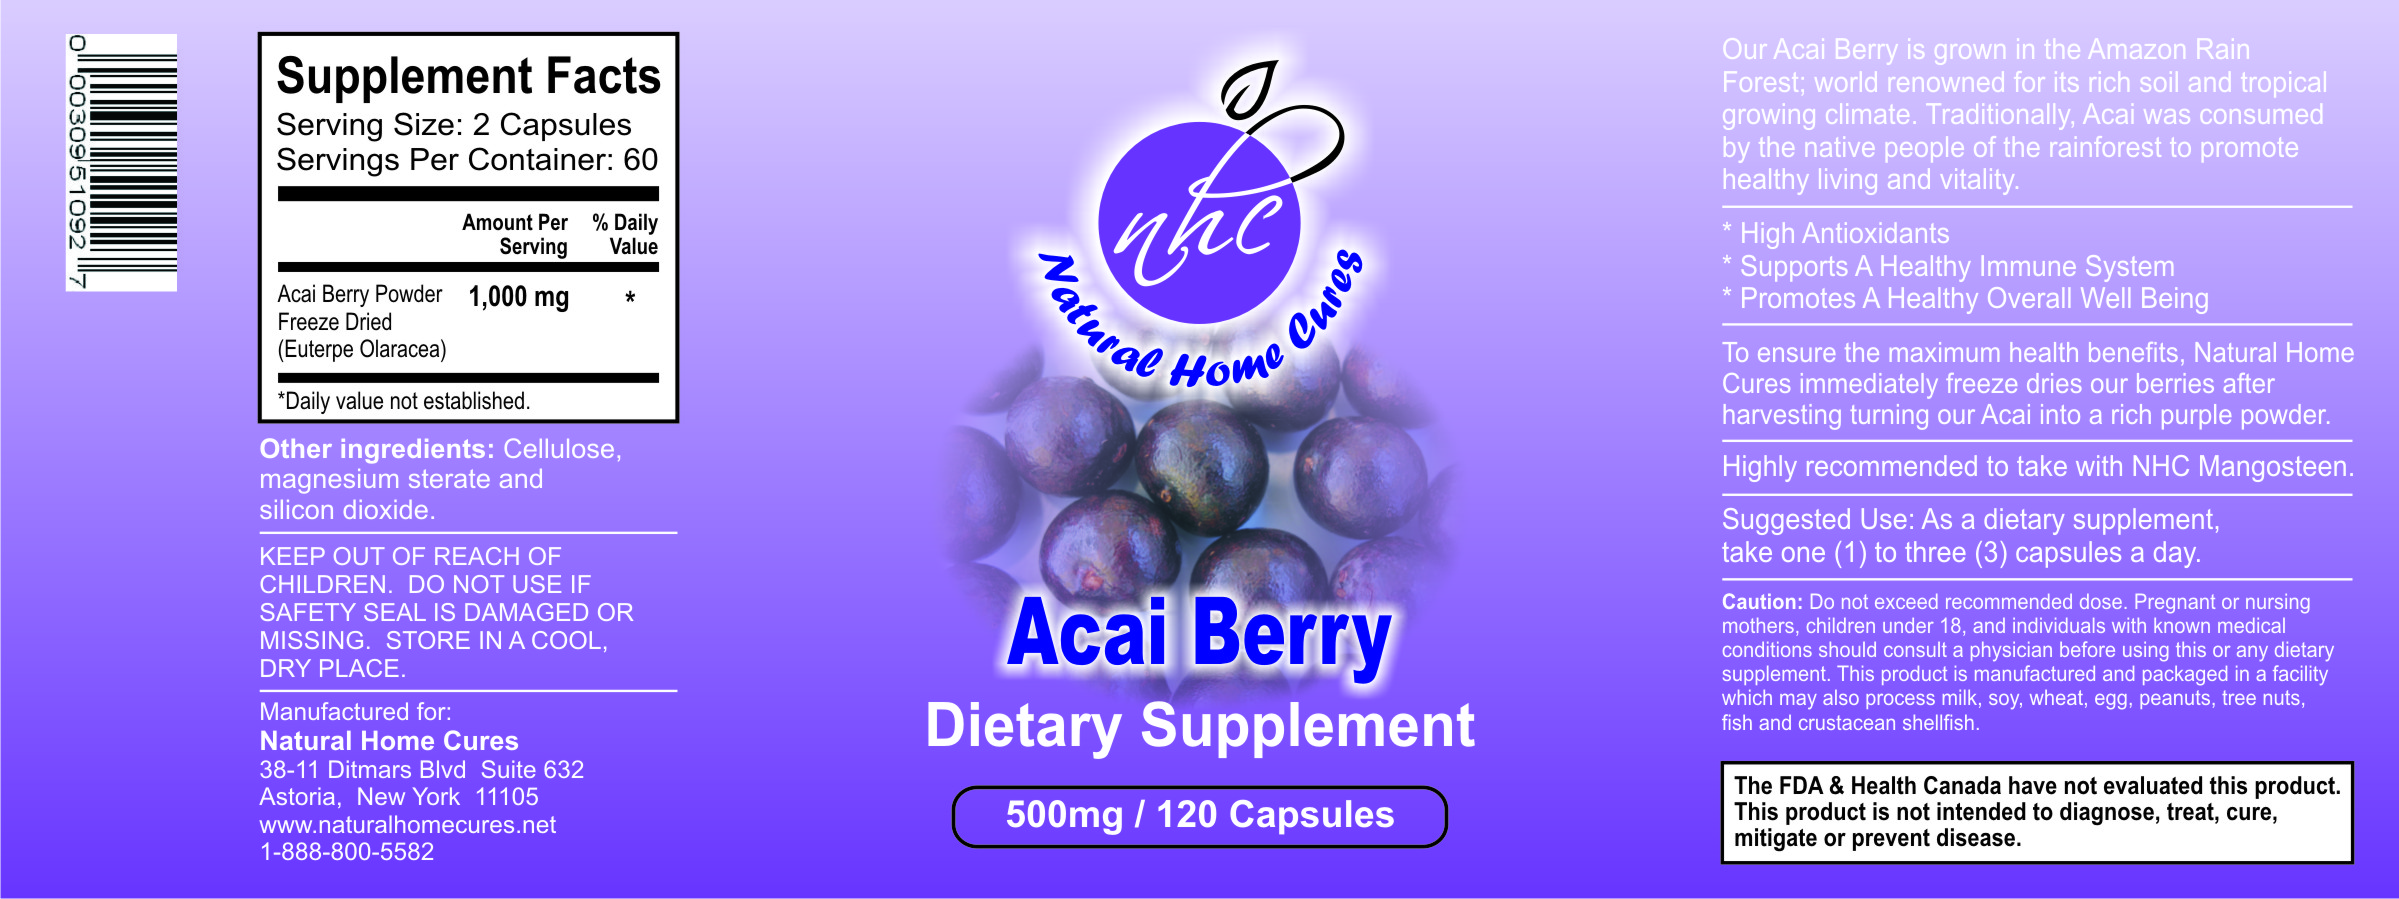 Natural Home Cures Organic Freeze Dried Acai Berry Product Label